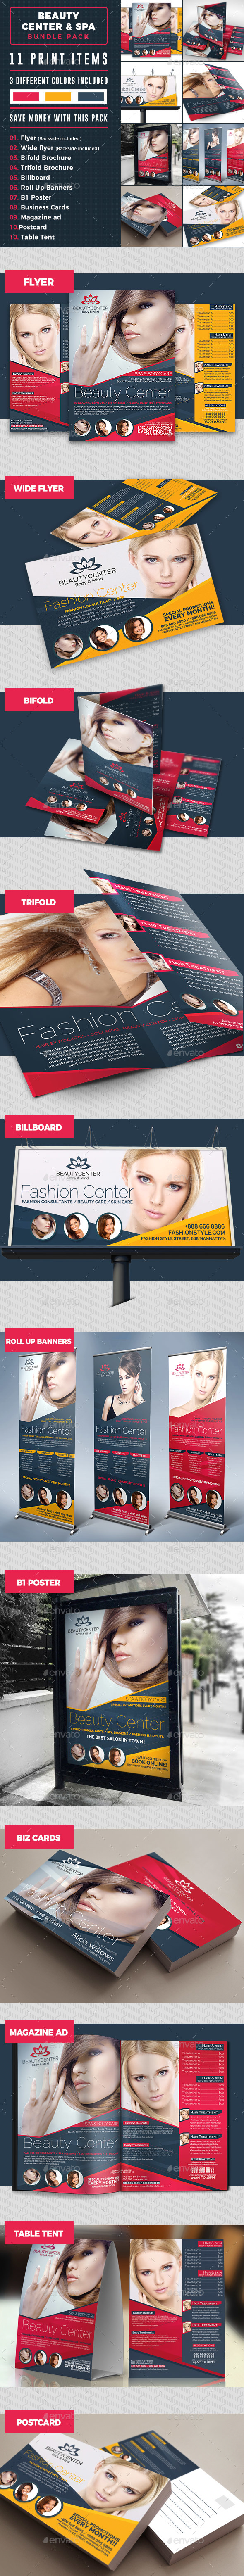 Beauty Center Print Template Bundle - Stationery Print Templates